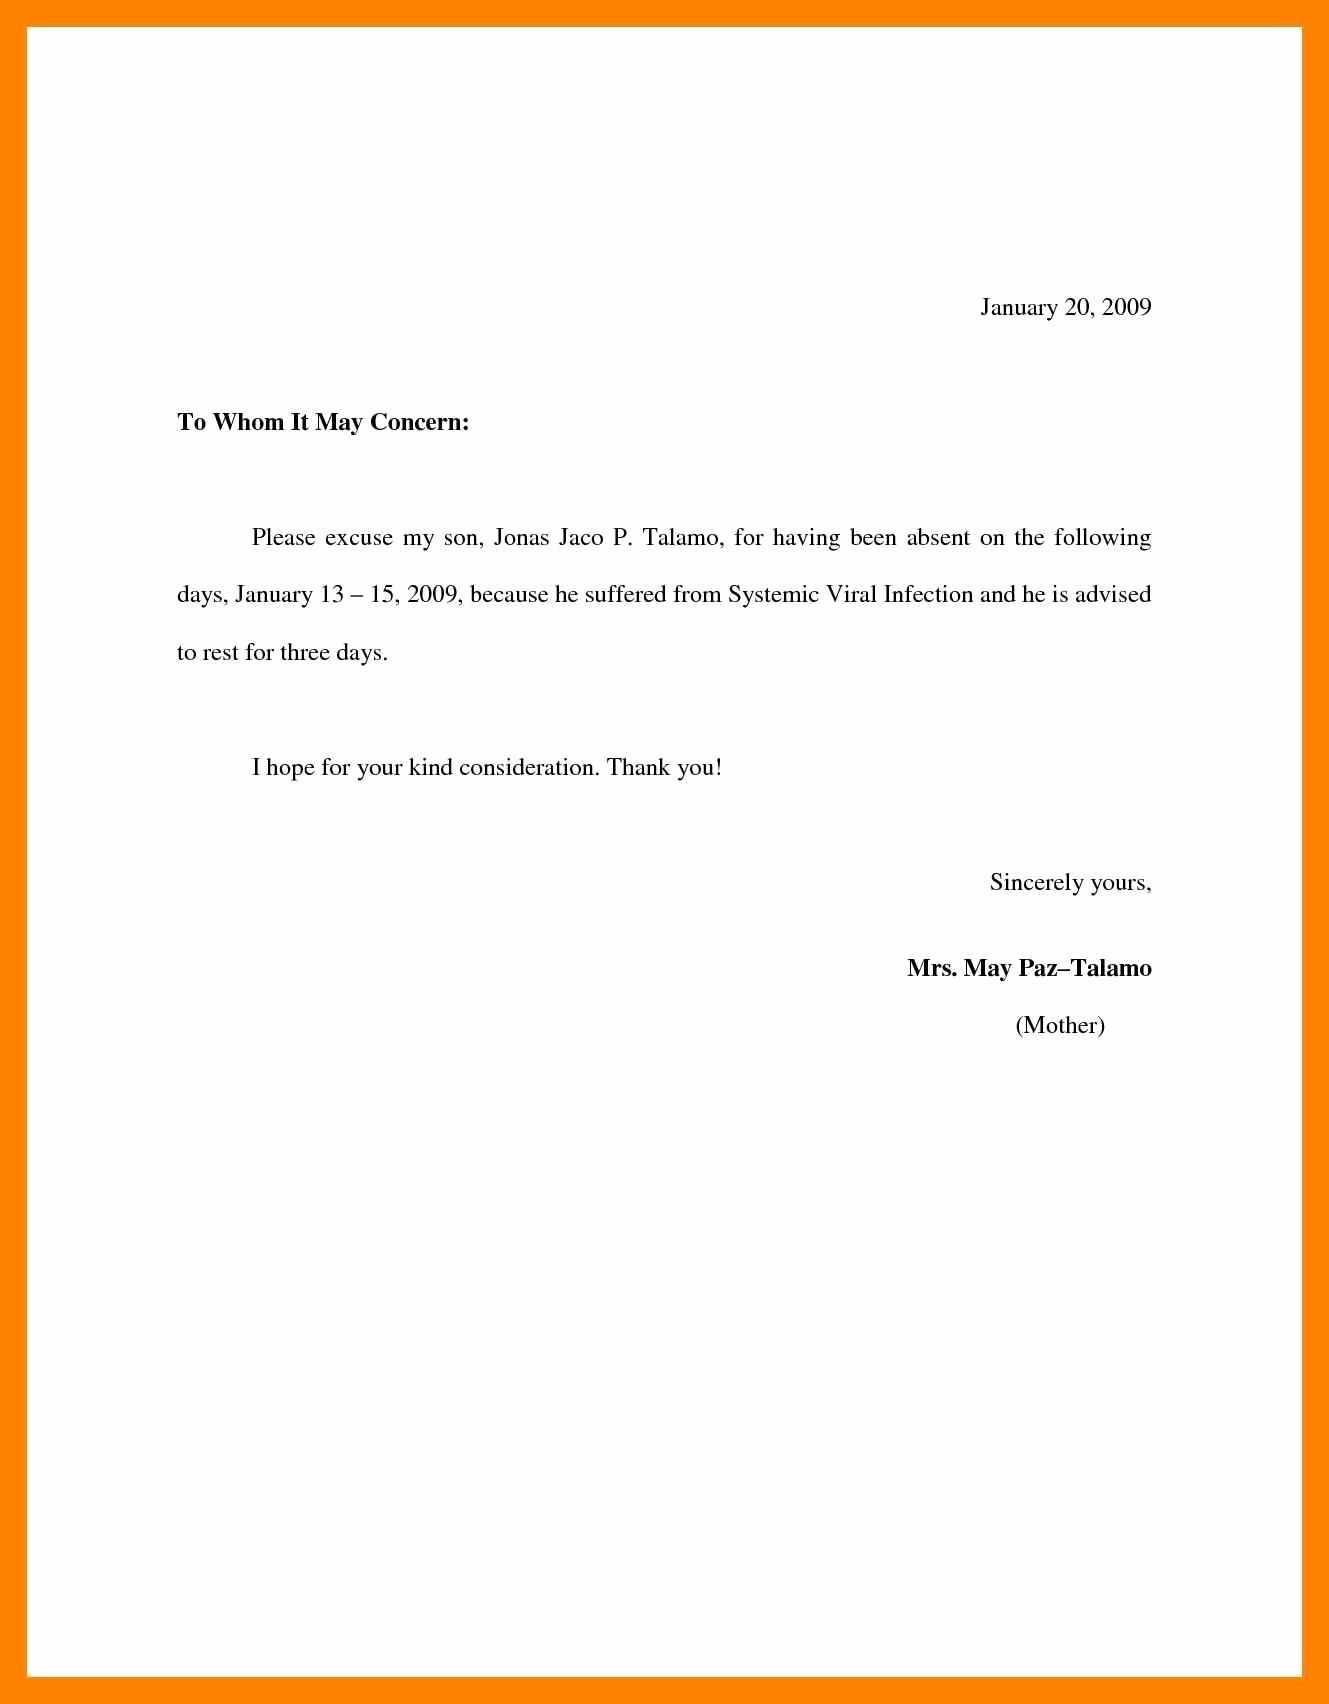 Excuse Absence From School Letter New Sample Excuse Letter for Absent In School New Best